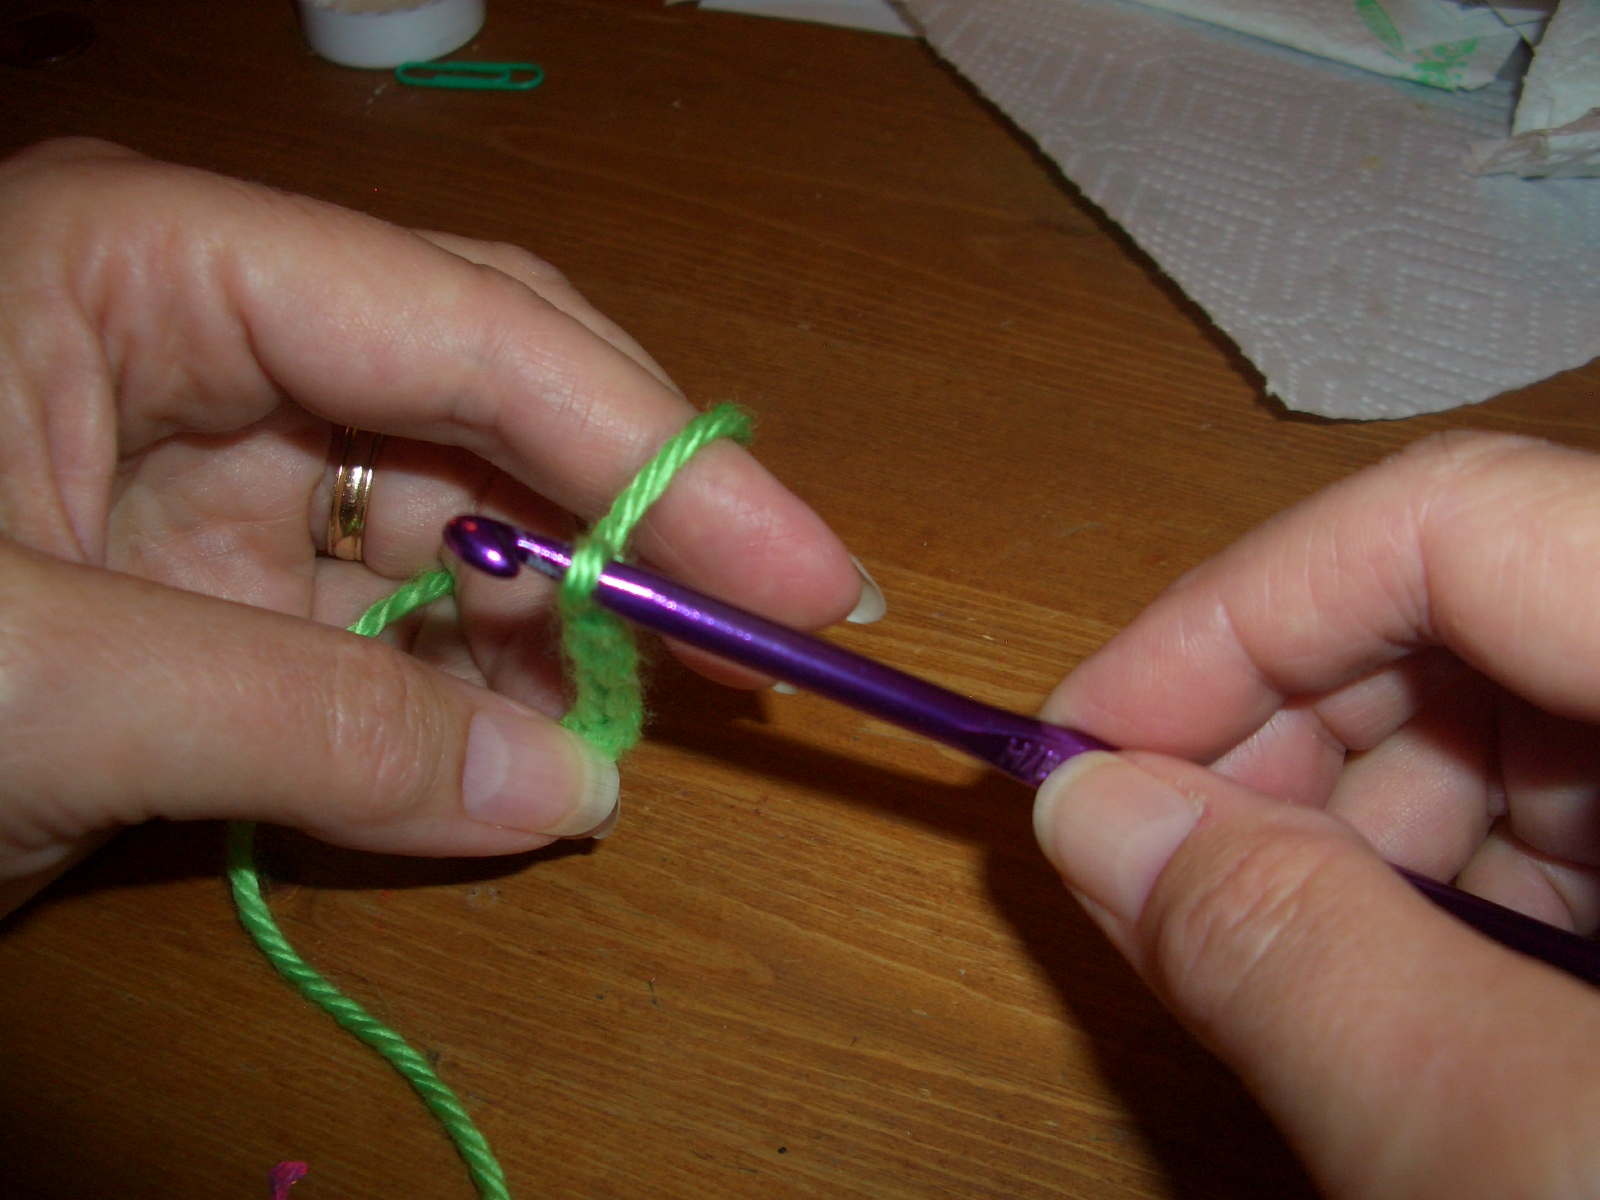 Crochet Stitches Tight : ... will be the right size and will match the other stitches on your hook